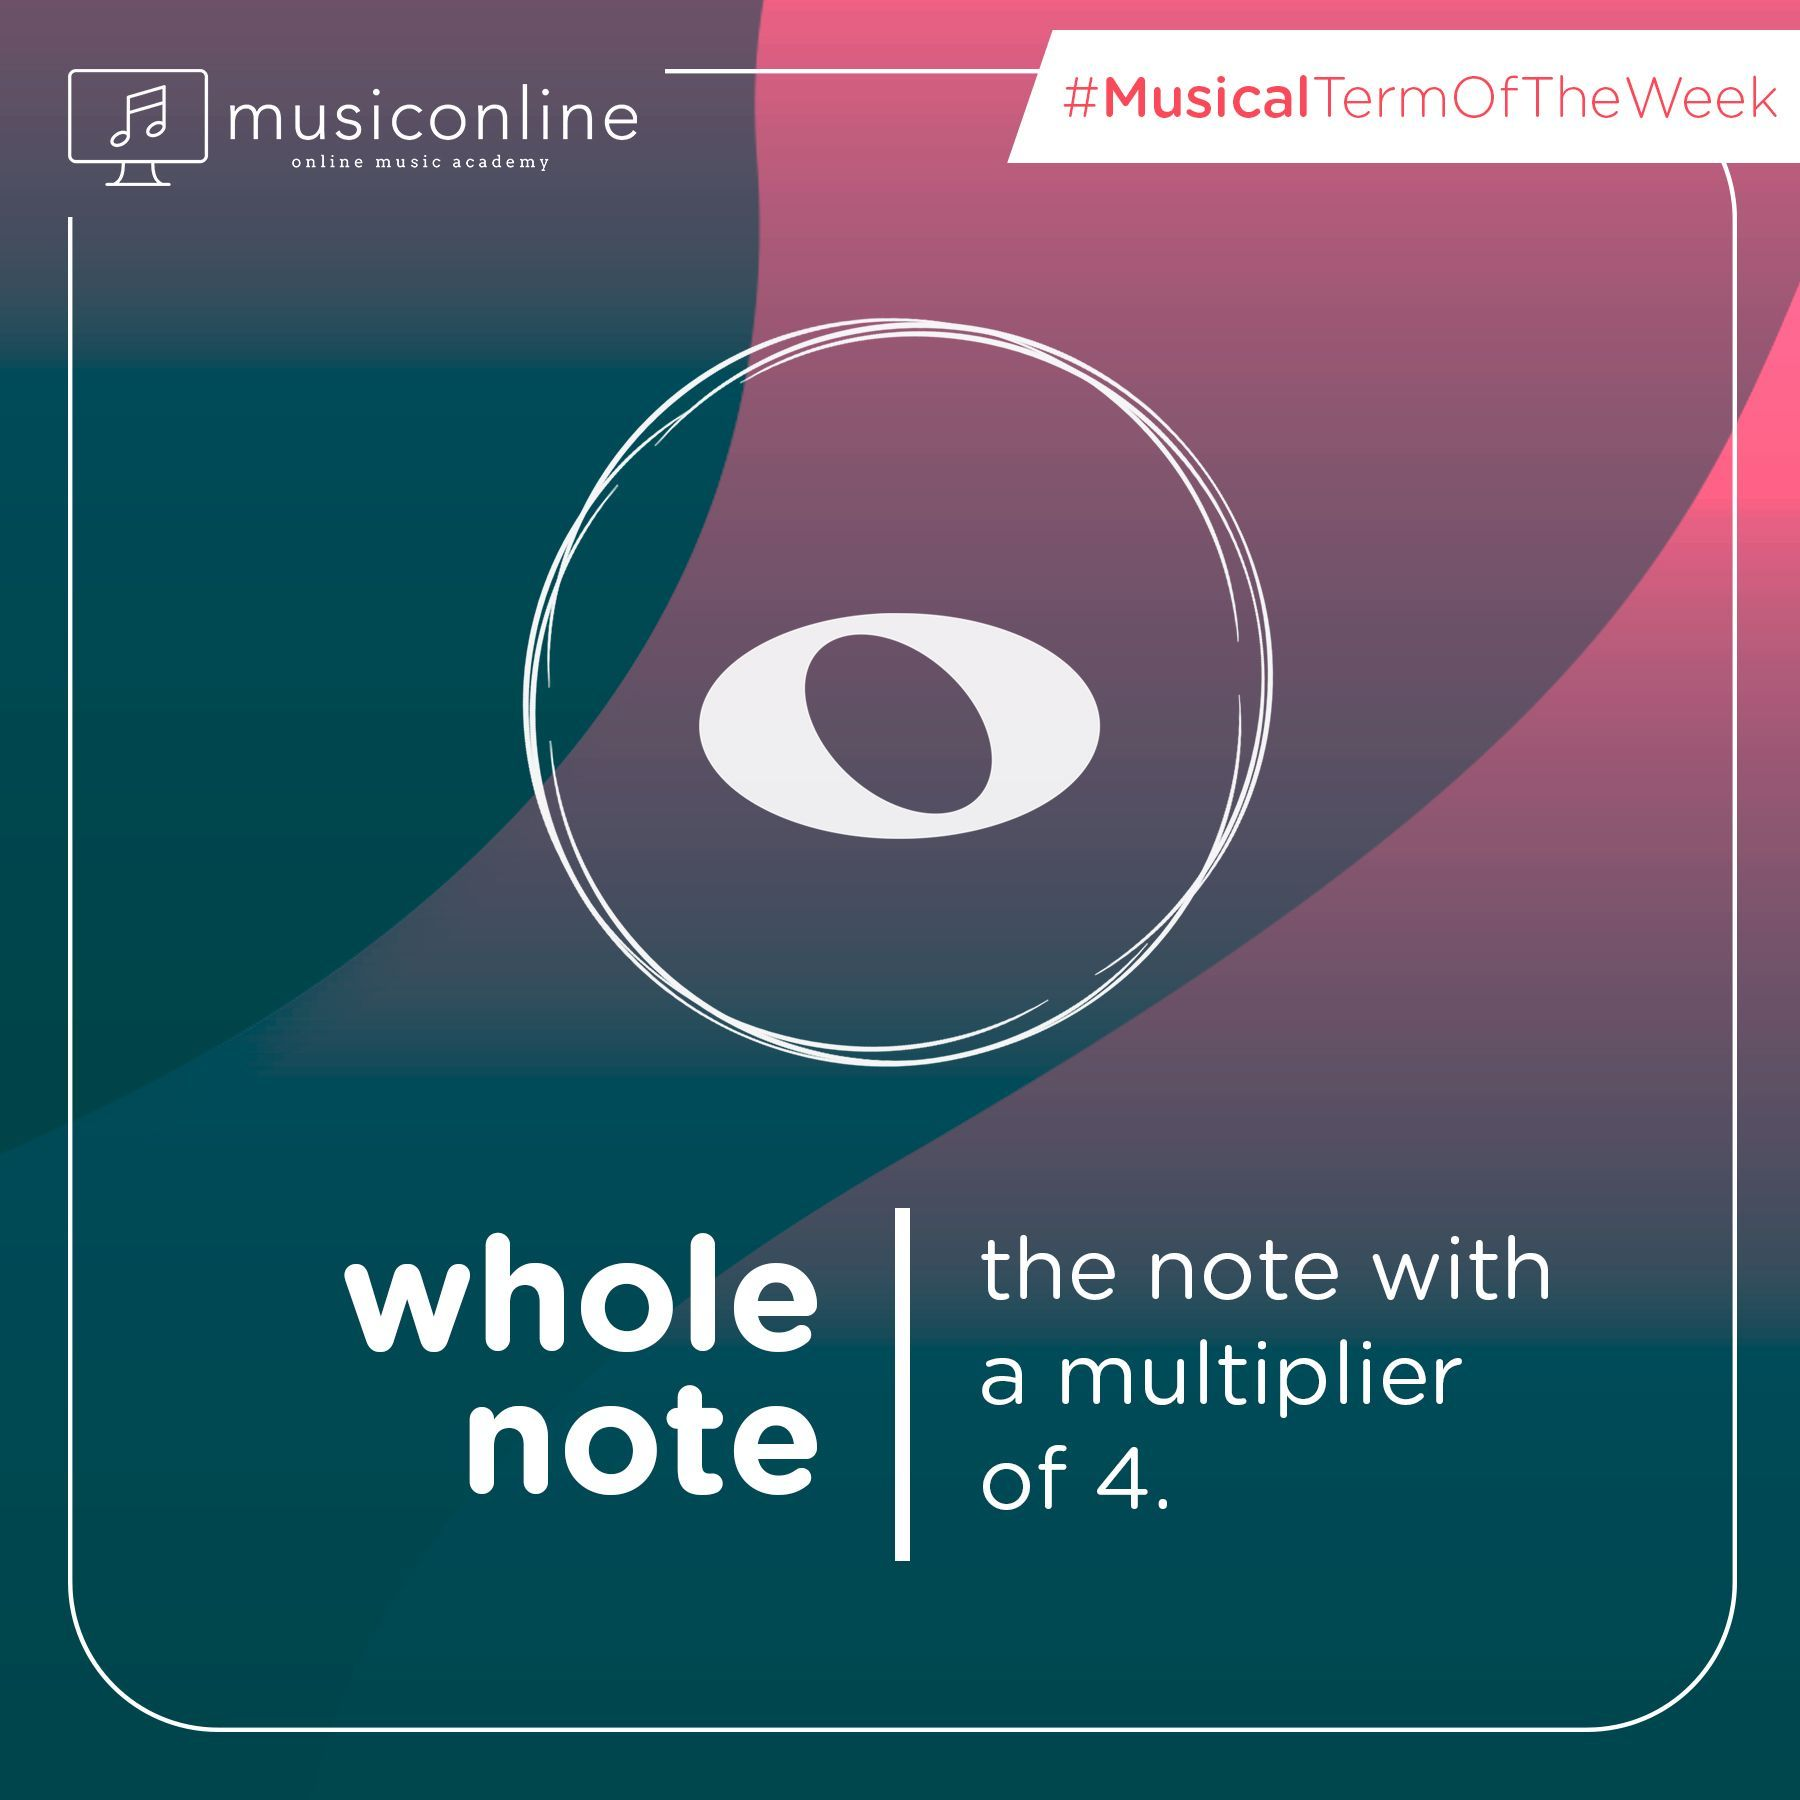 Musical term of the week is